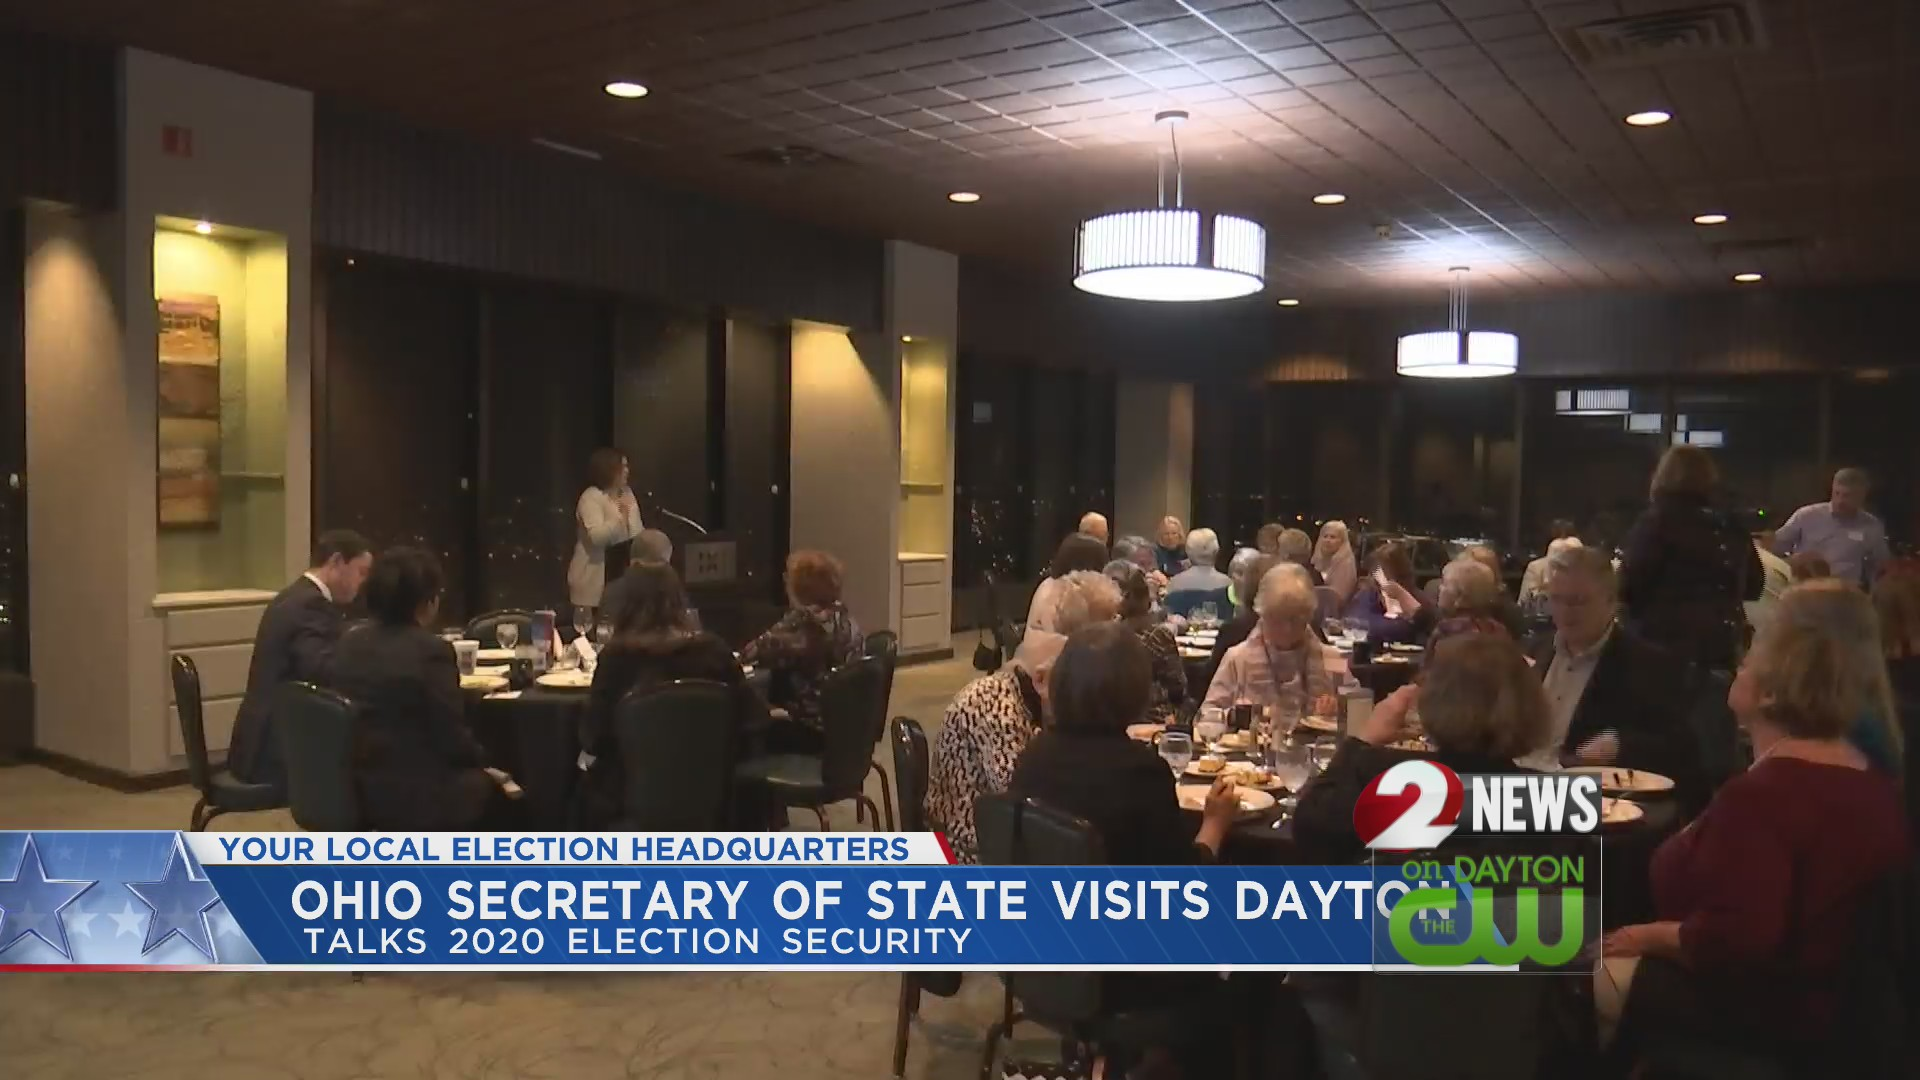 Ohio Secretary of State visits Dayton